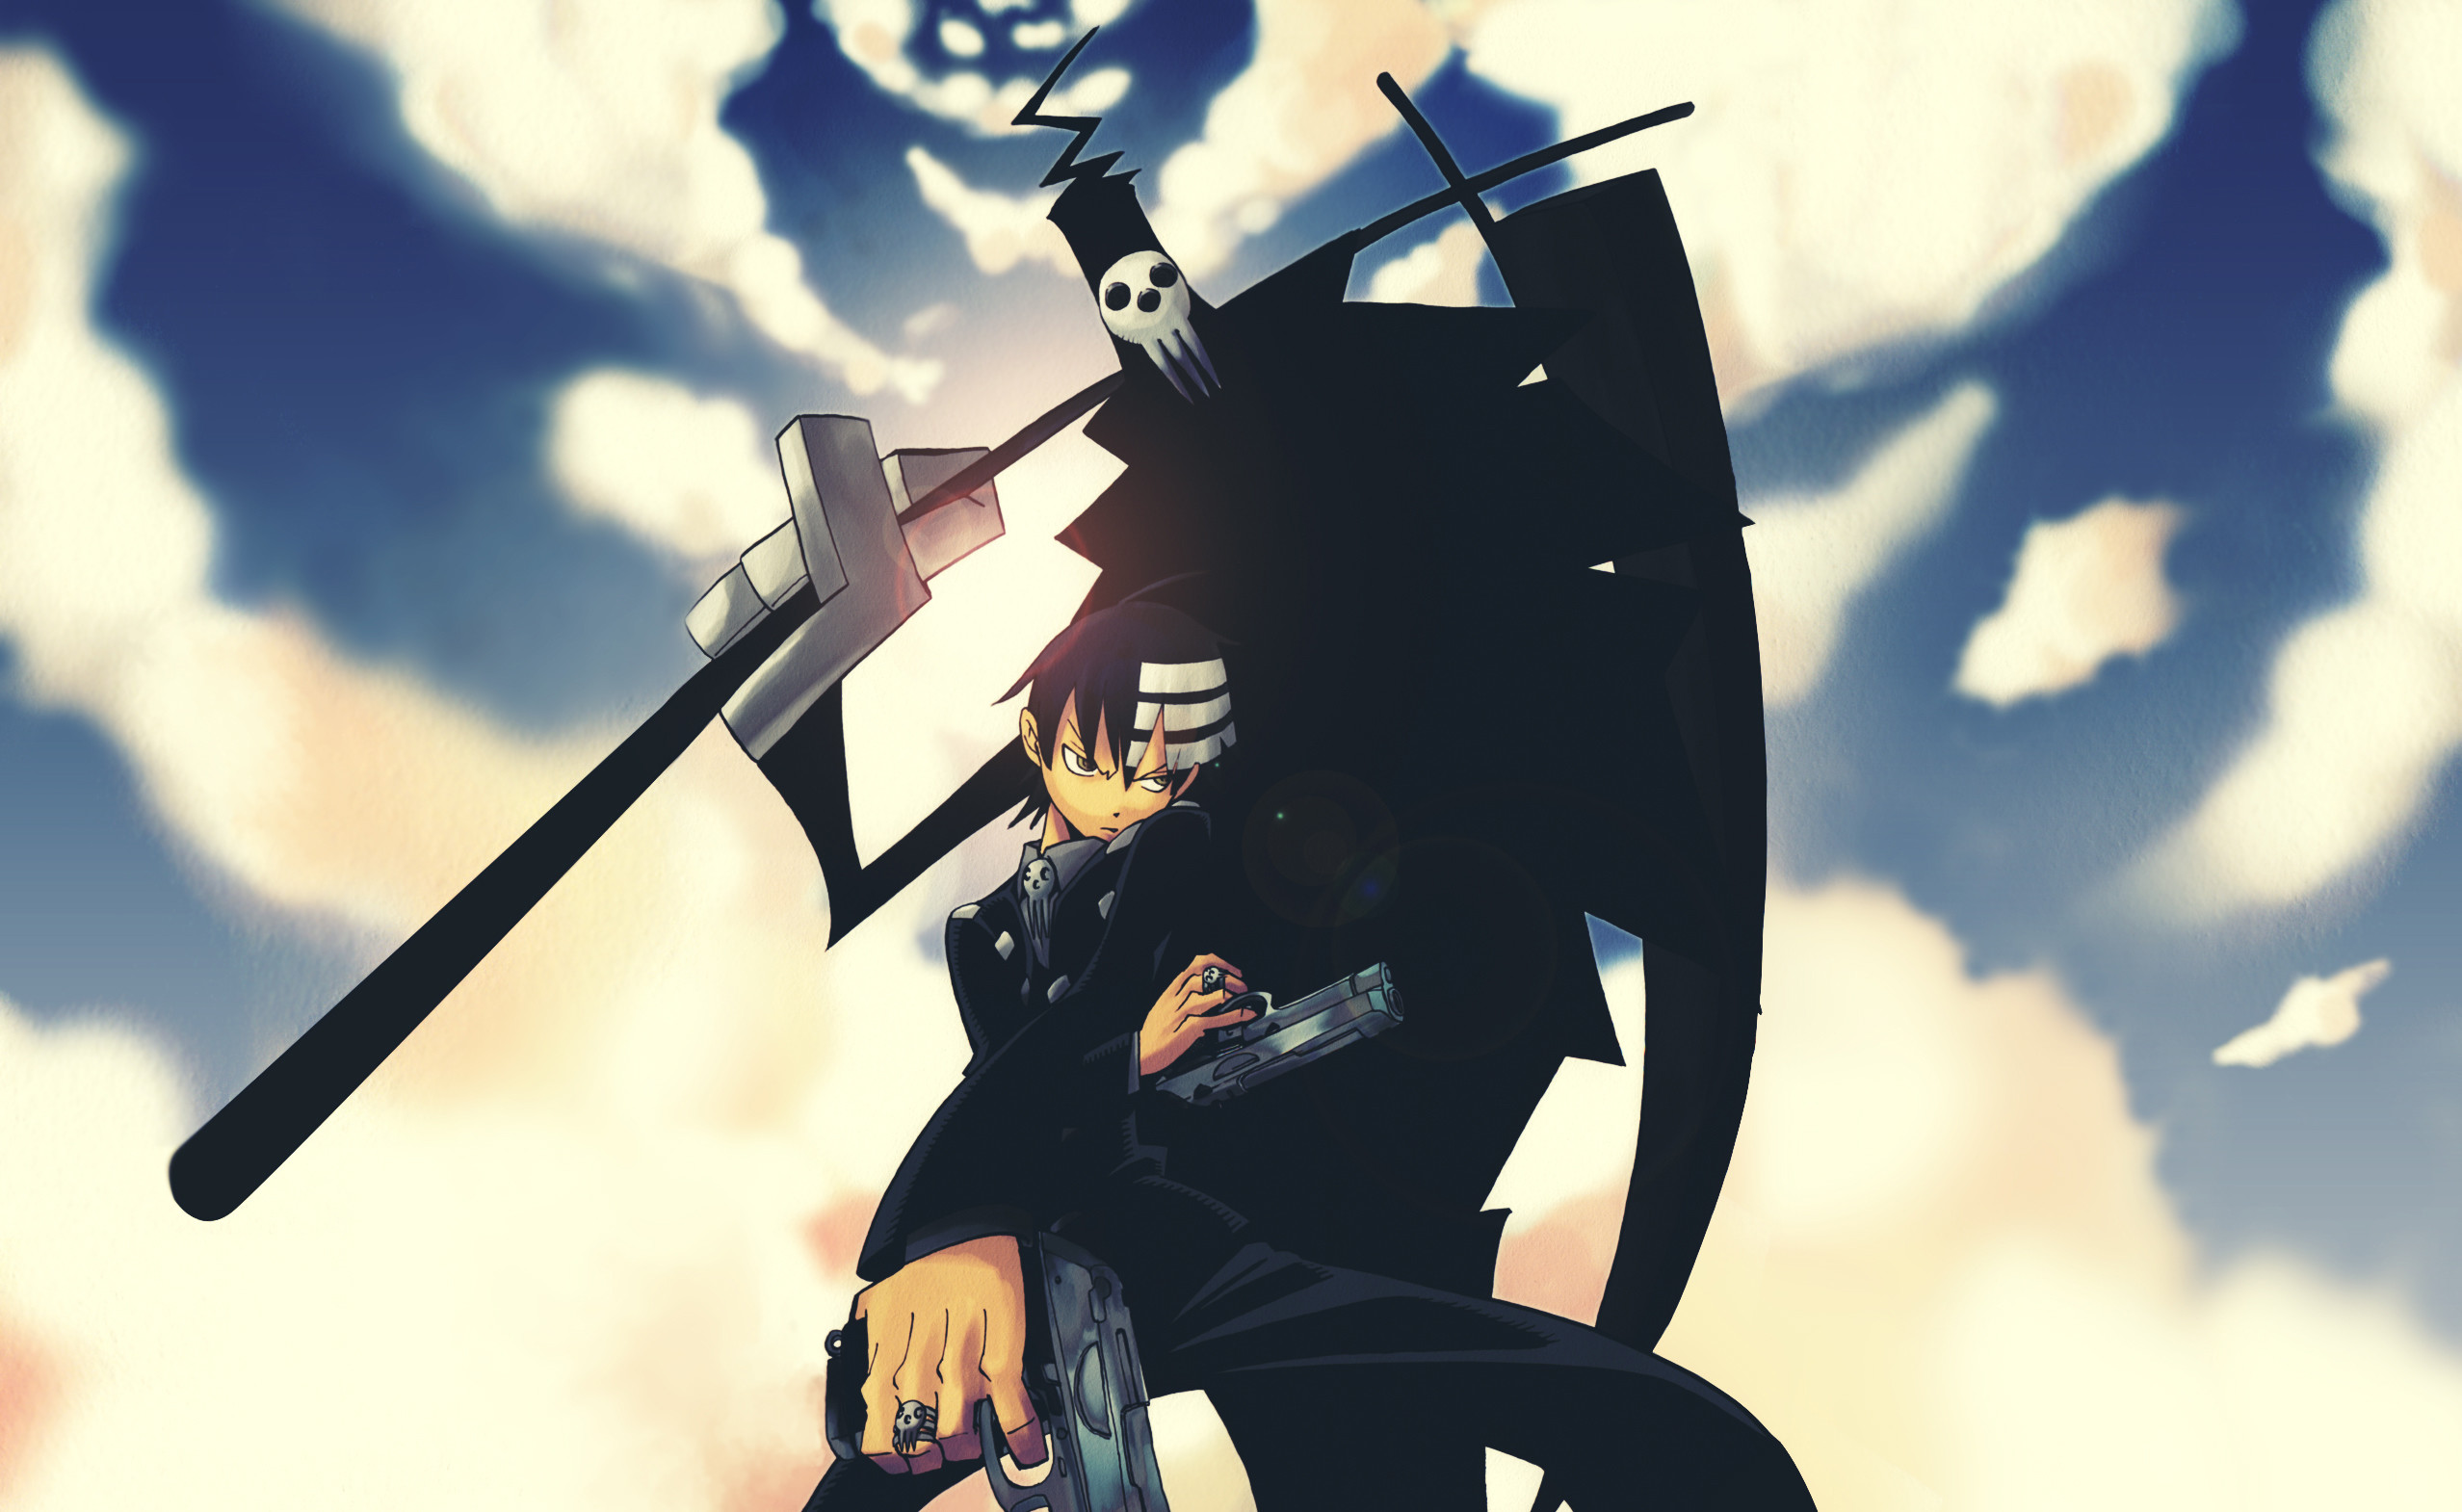 Soul eater games free